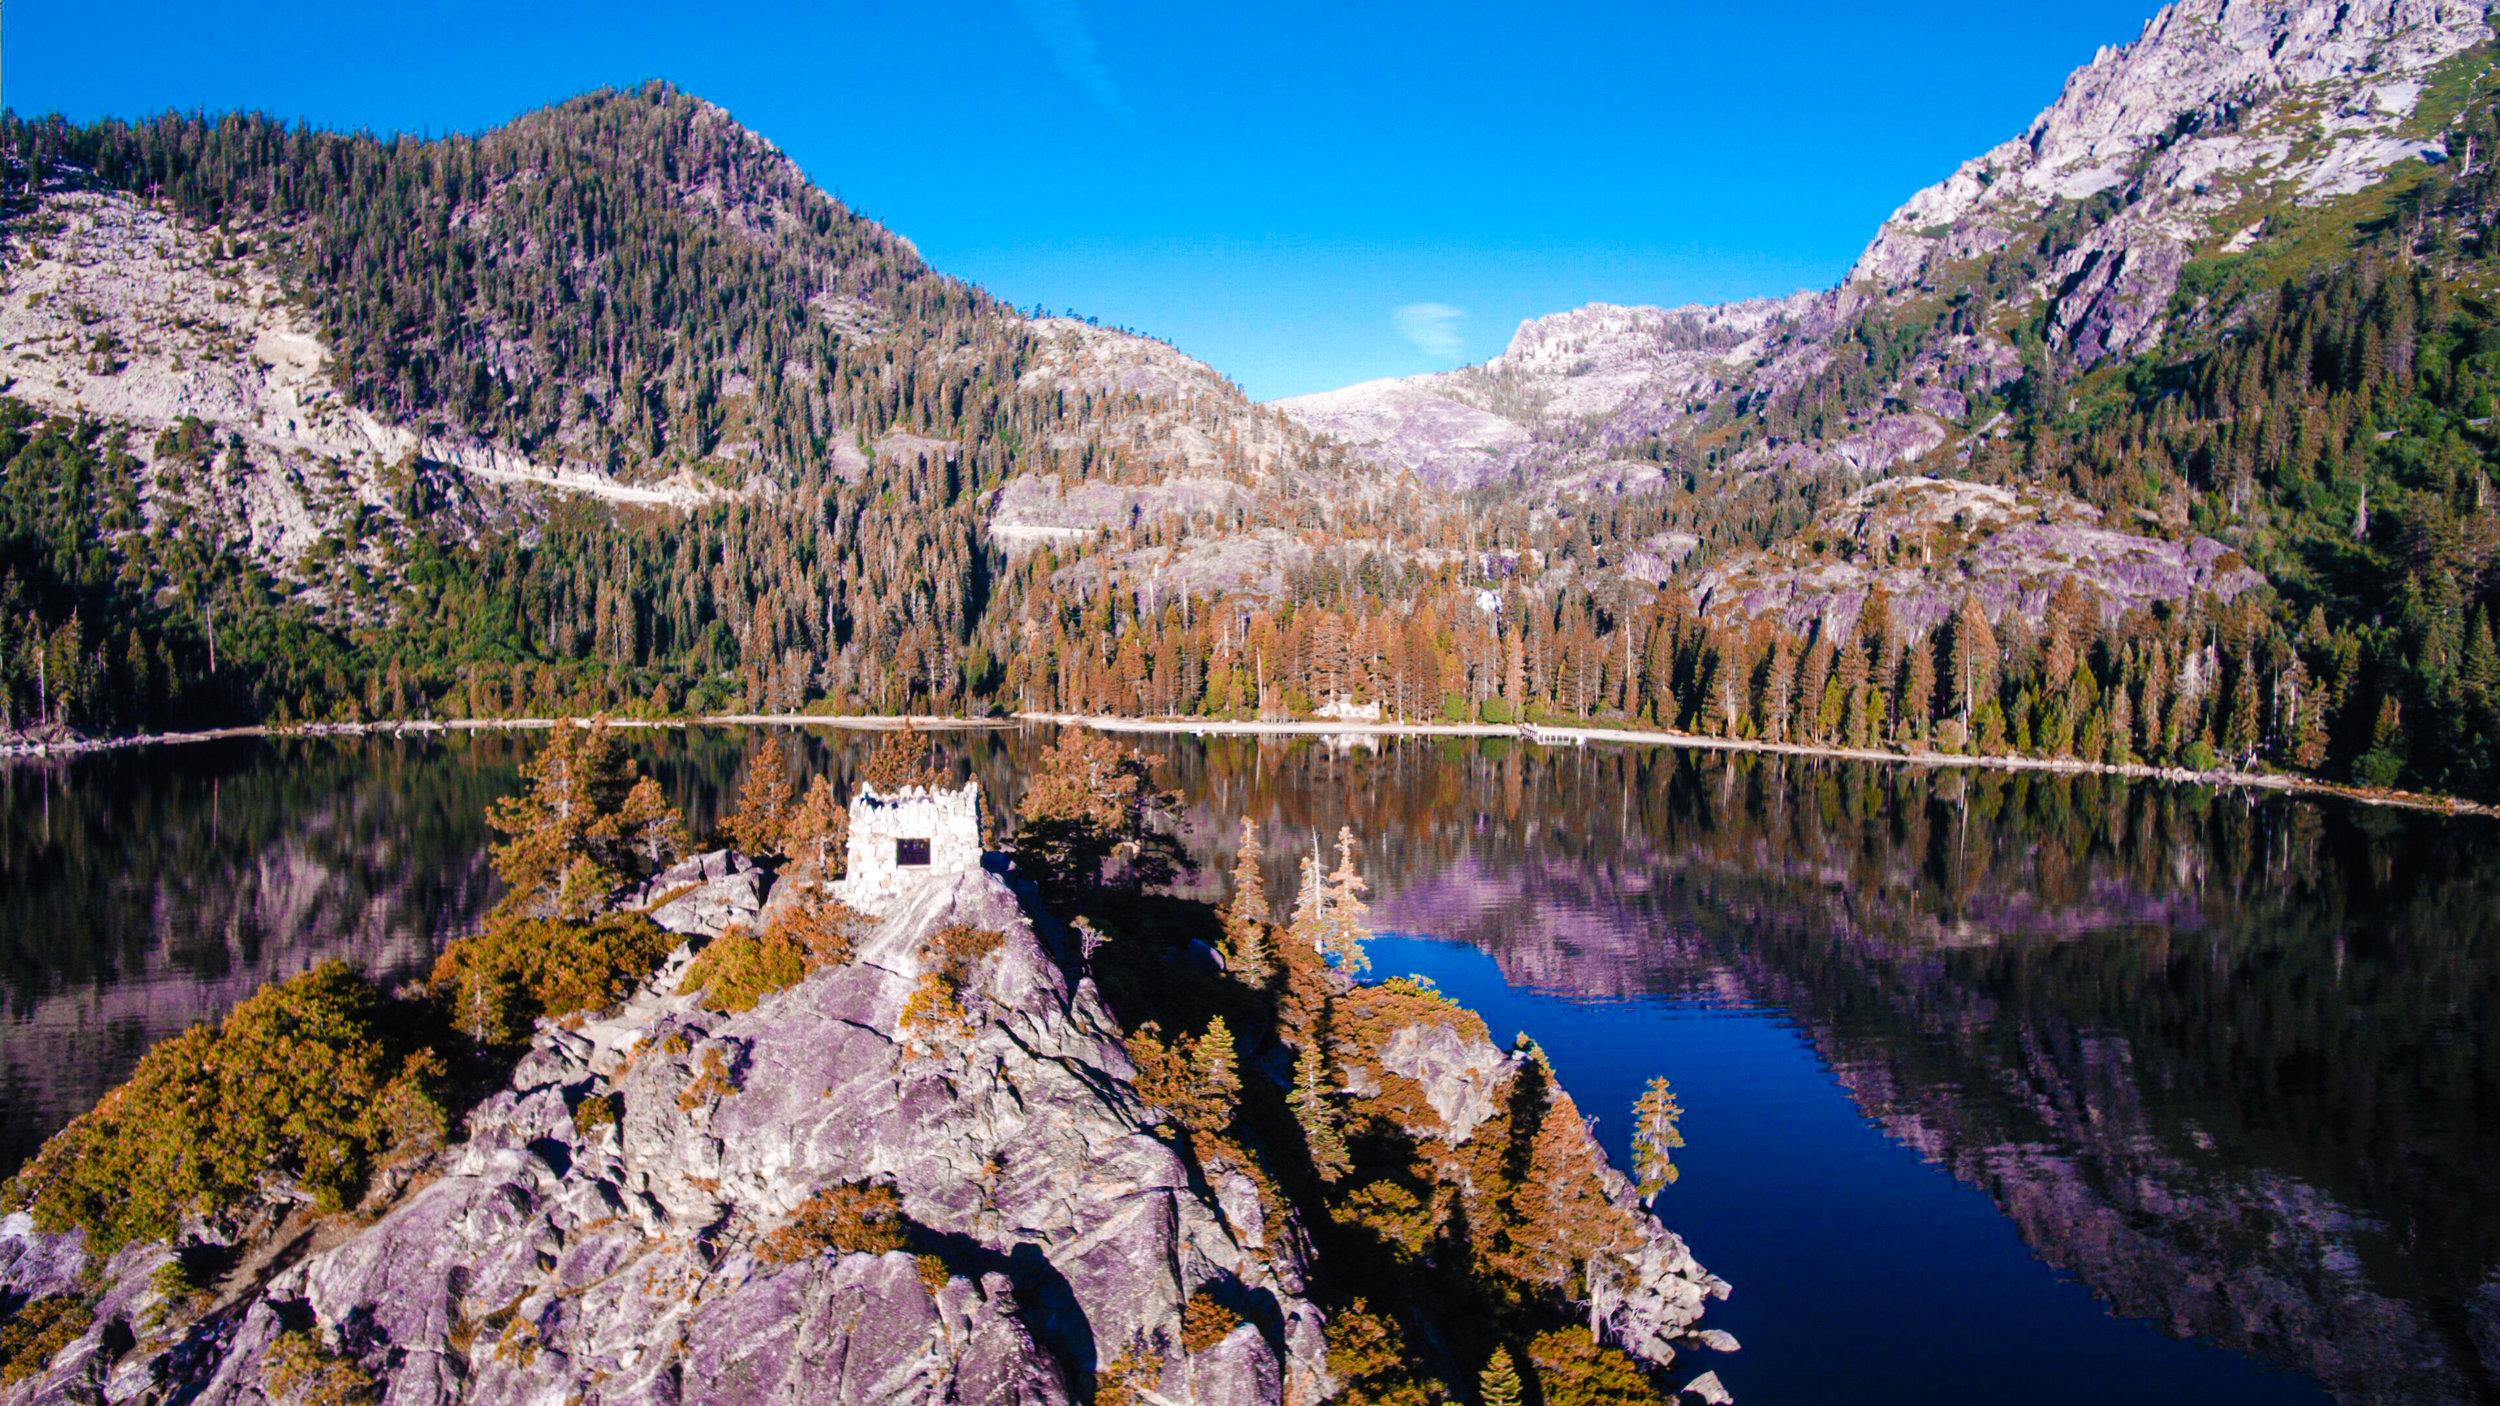 Drones for Aerial Photography in Lake Tahoe